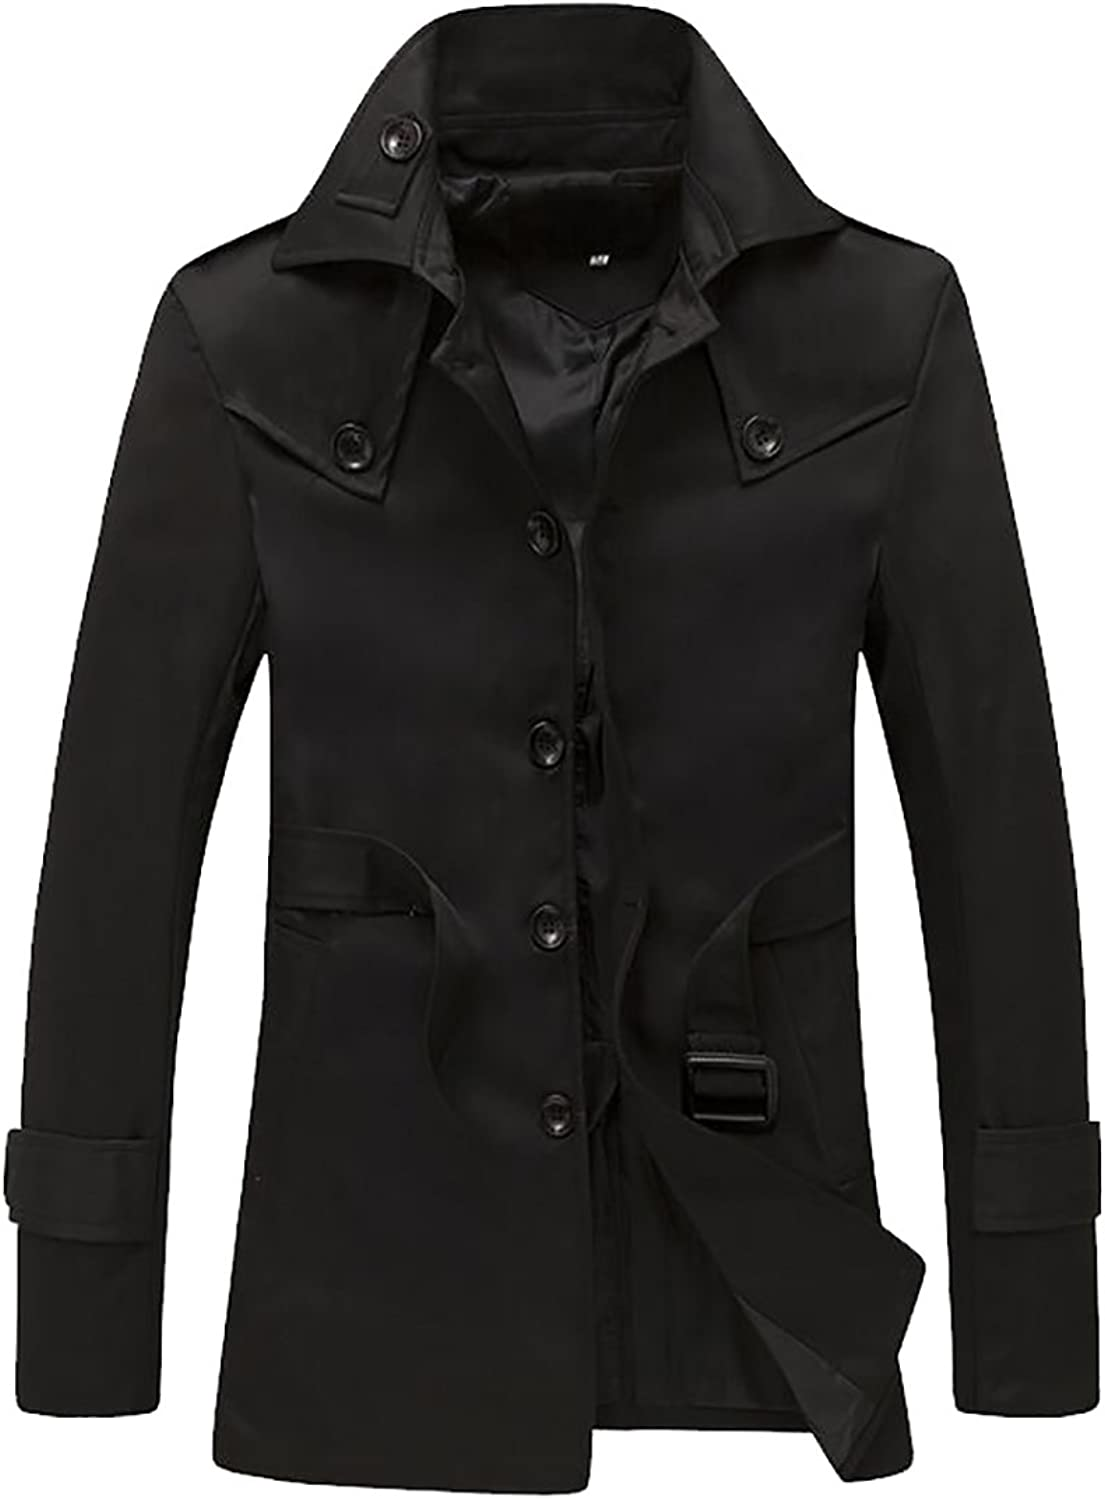 ARRIVE GUIDE Mens Solid Single-Breasted Belted Mid Long Outwear Trench Coat